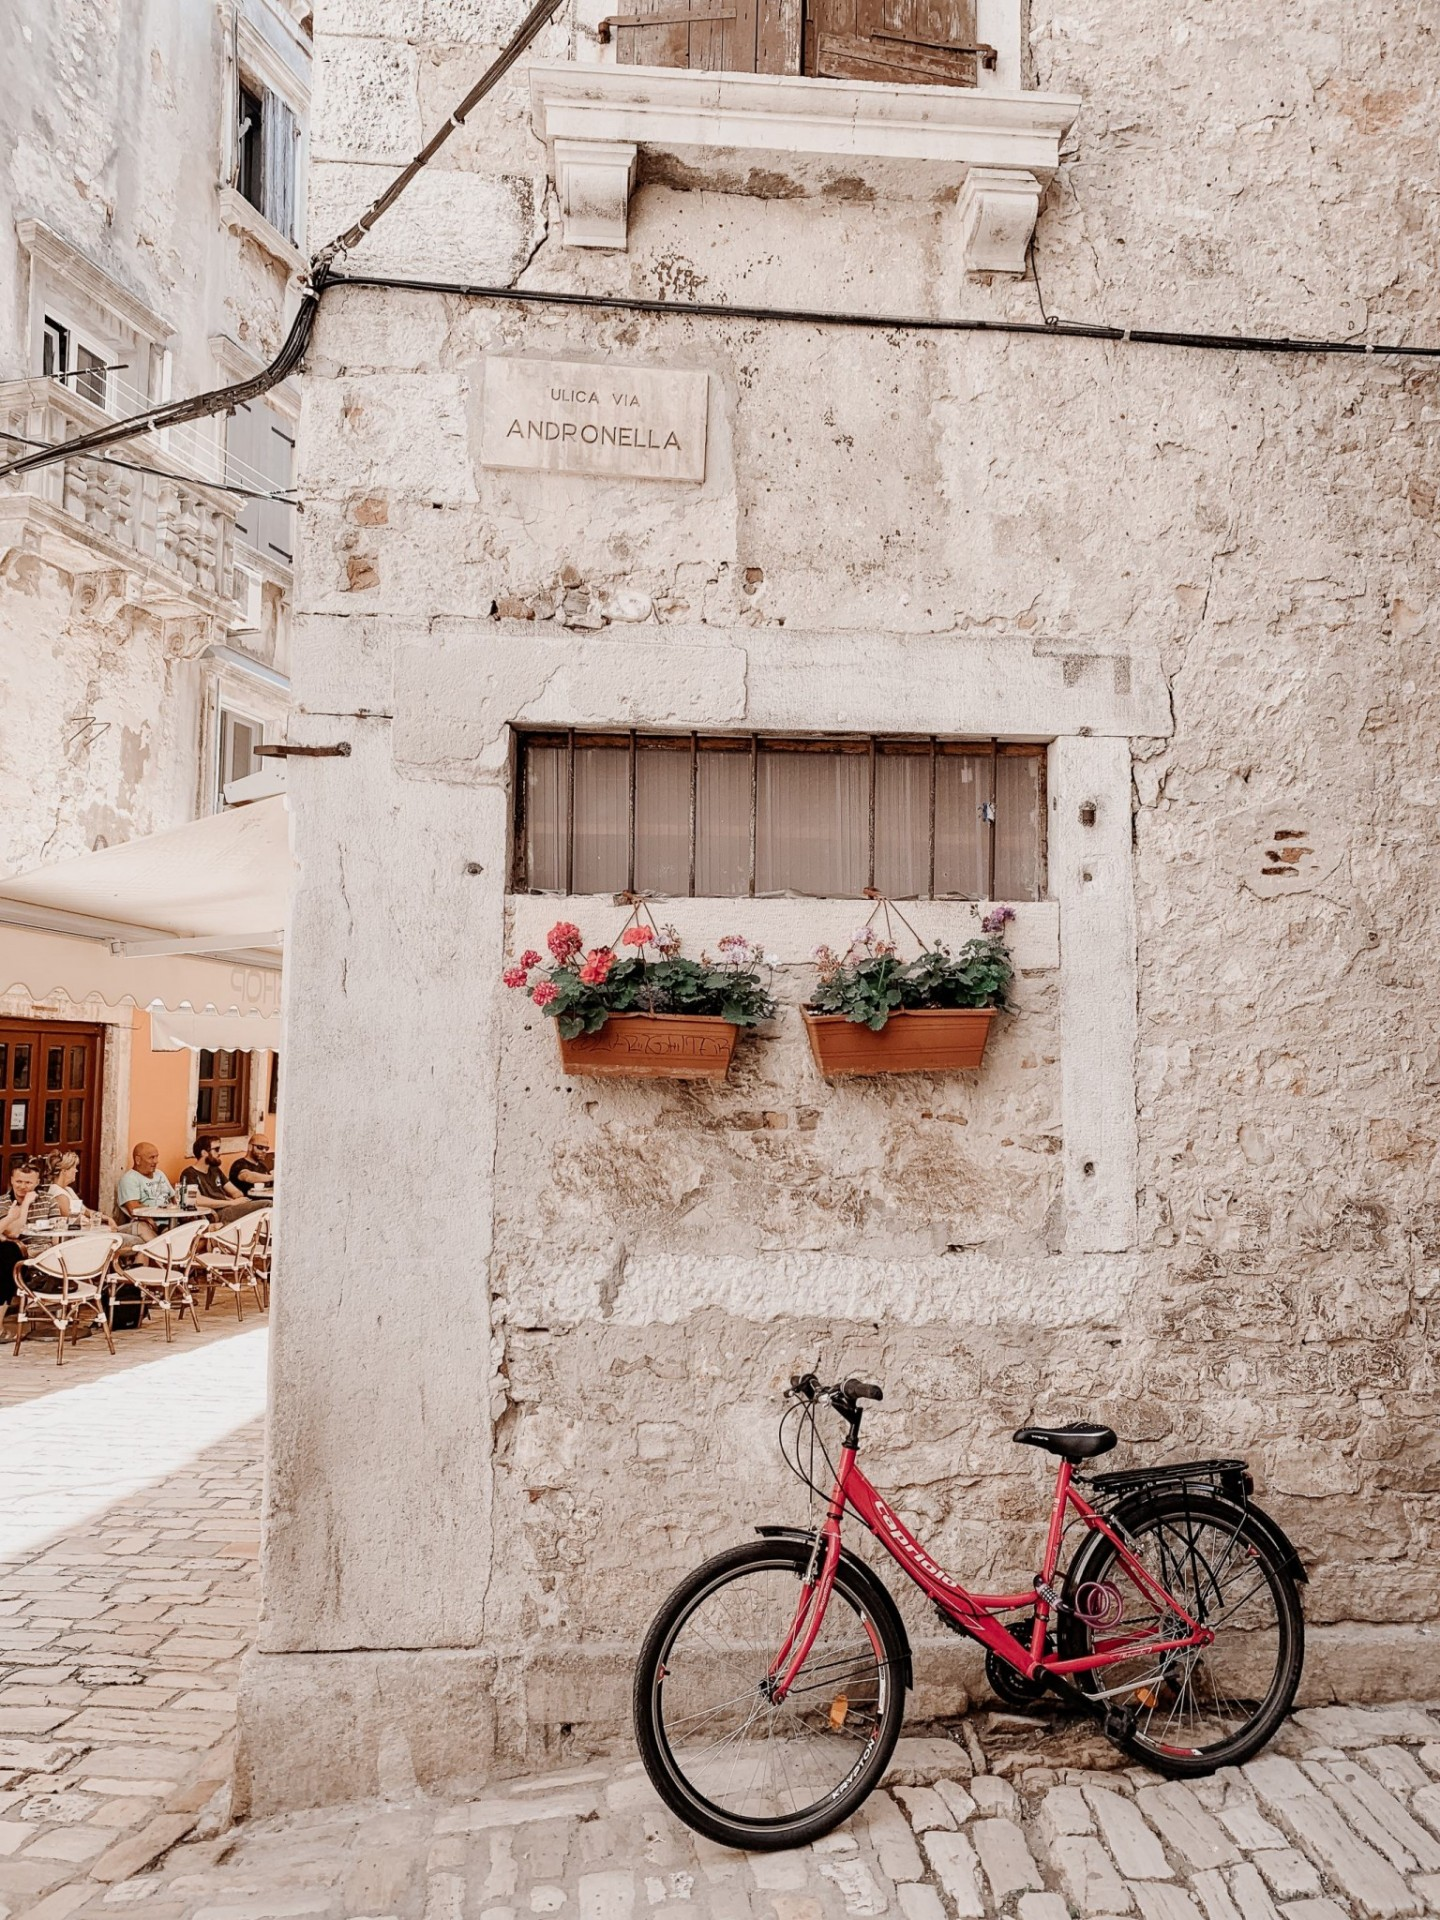 Lifestyle blogger Mollie Moore shares an Istria, Croatia travel guide. | Istria, Croatia Travel guide by popular London fashion and travel blogger Mollie Moore: image of a red bicycle leaning up against the side of the Ulica Via Andronella building in Istria, Croatia.